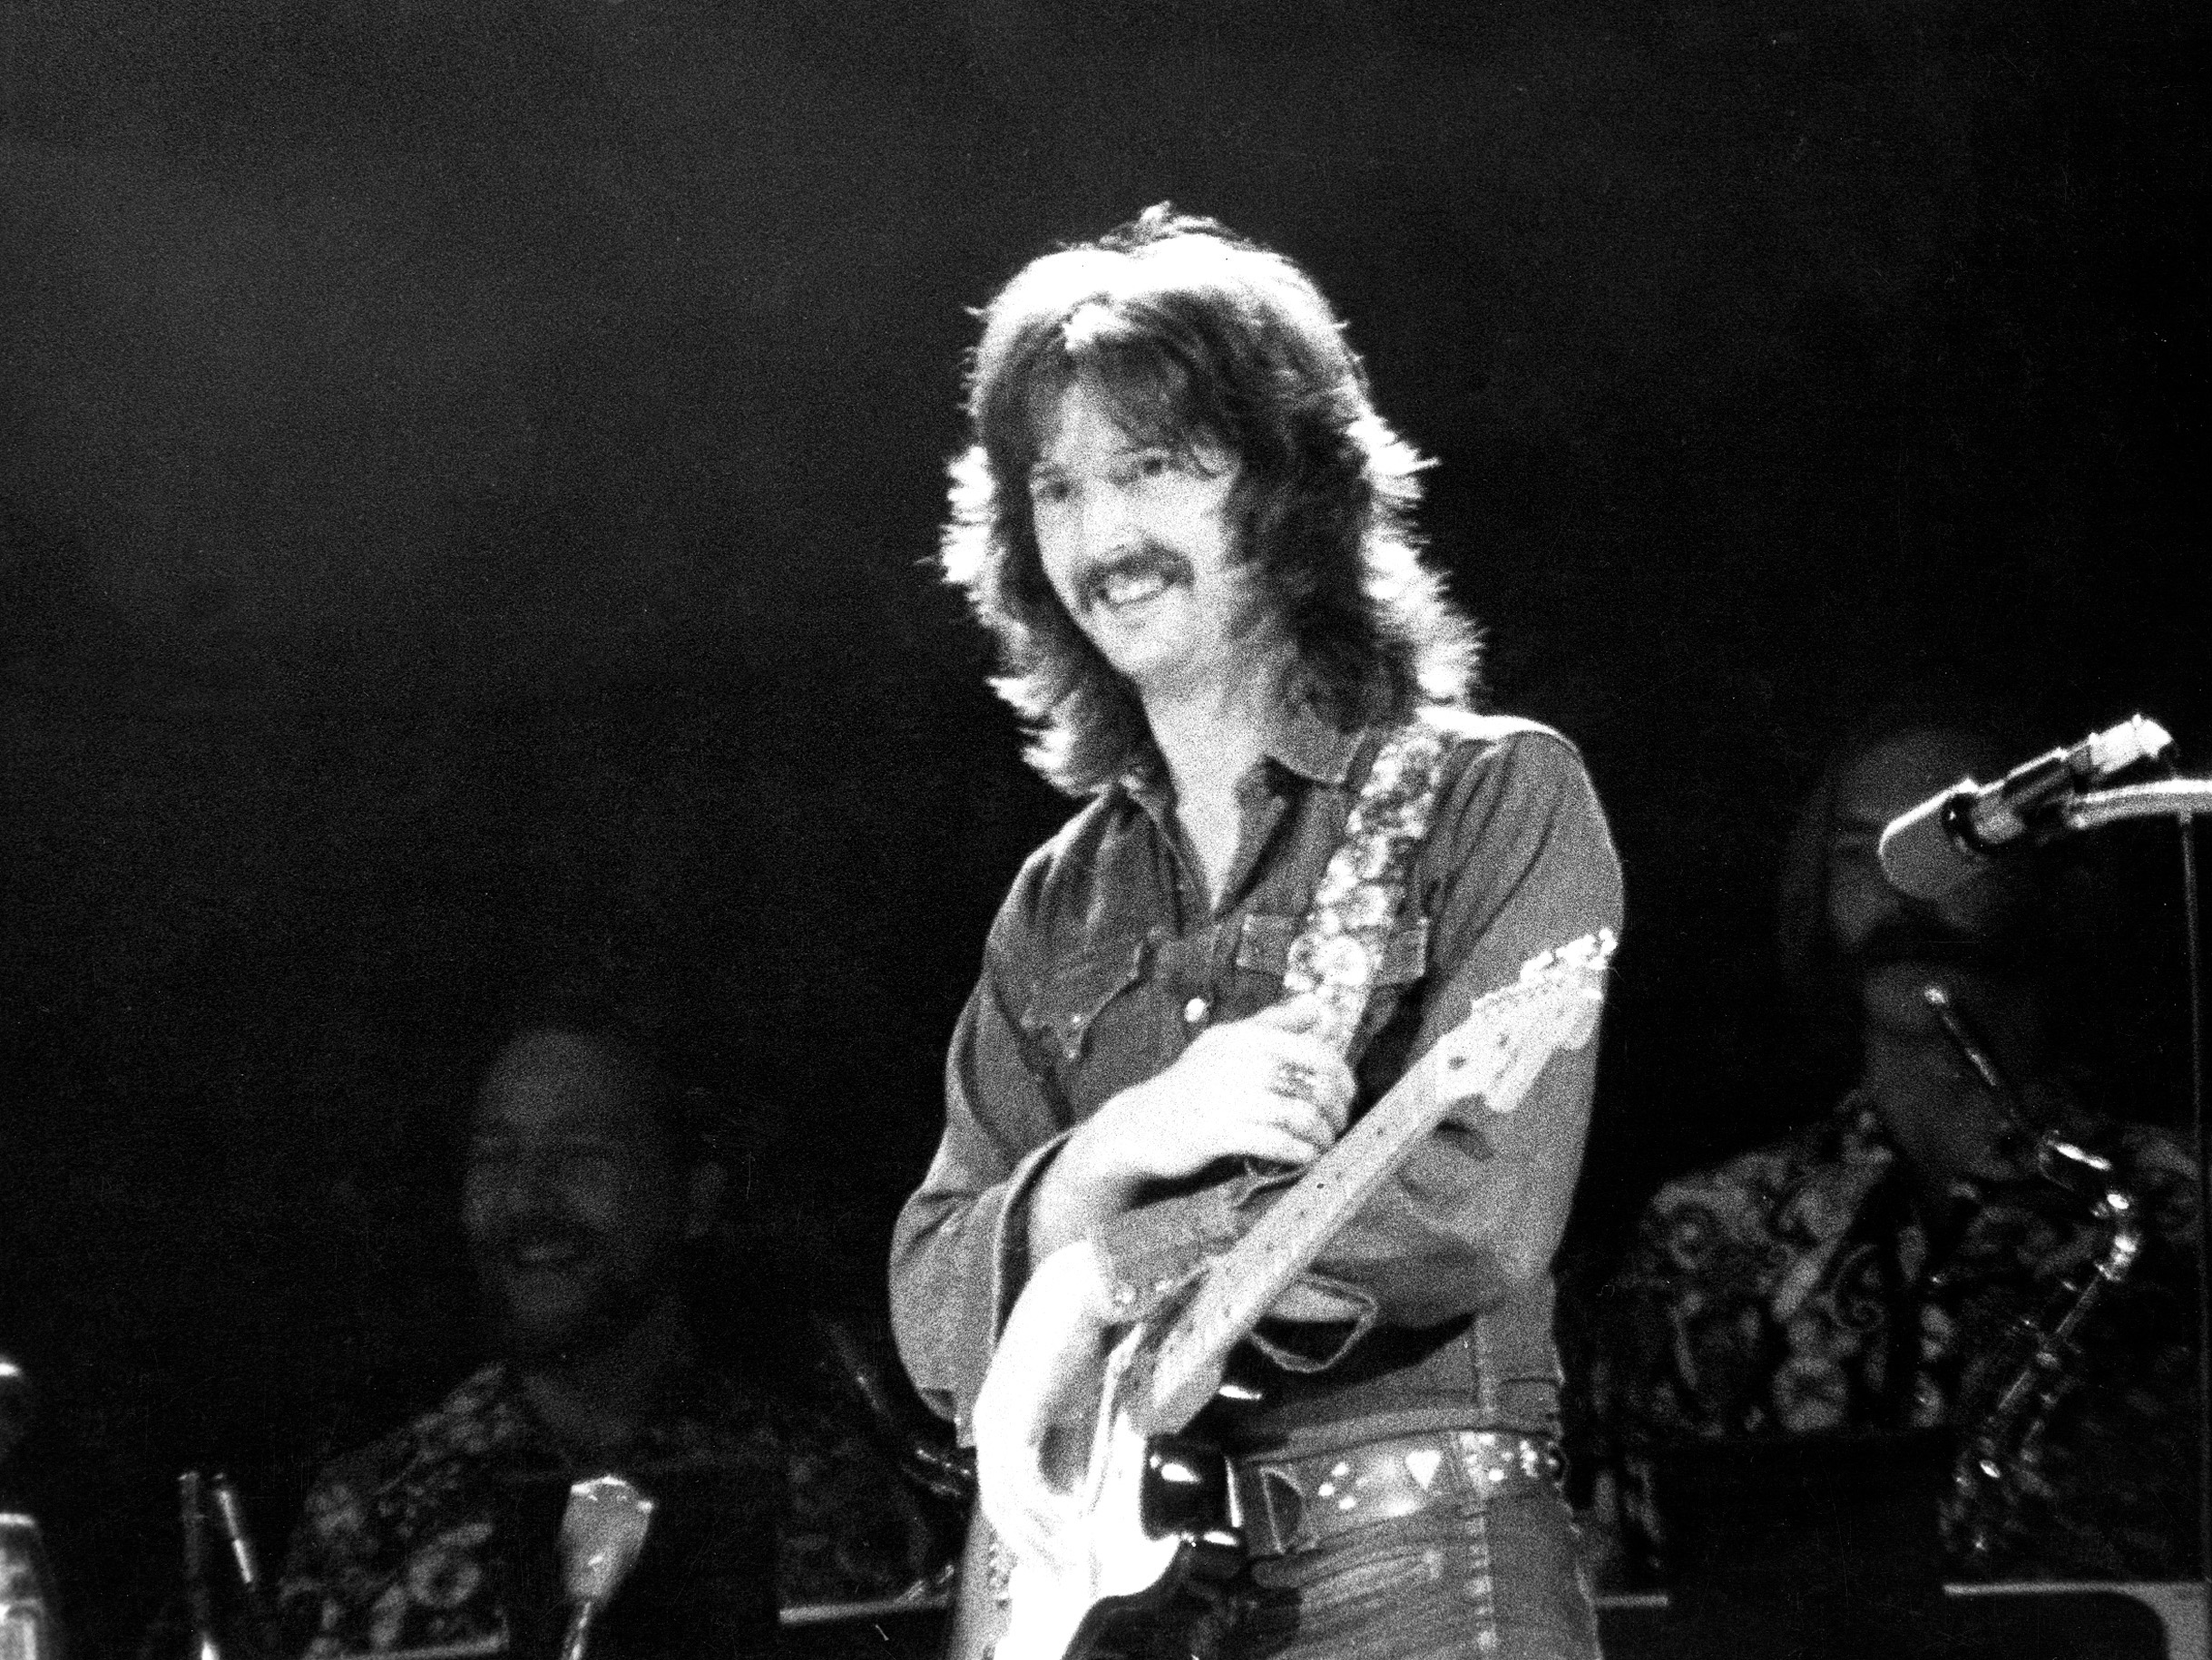 eric clapton performing in a bangladesh concert august 1971 eric clapton photos. Black Bedroom Furniture Sets. Home Design Ideas